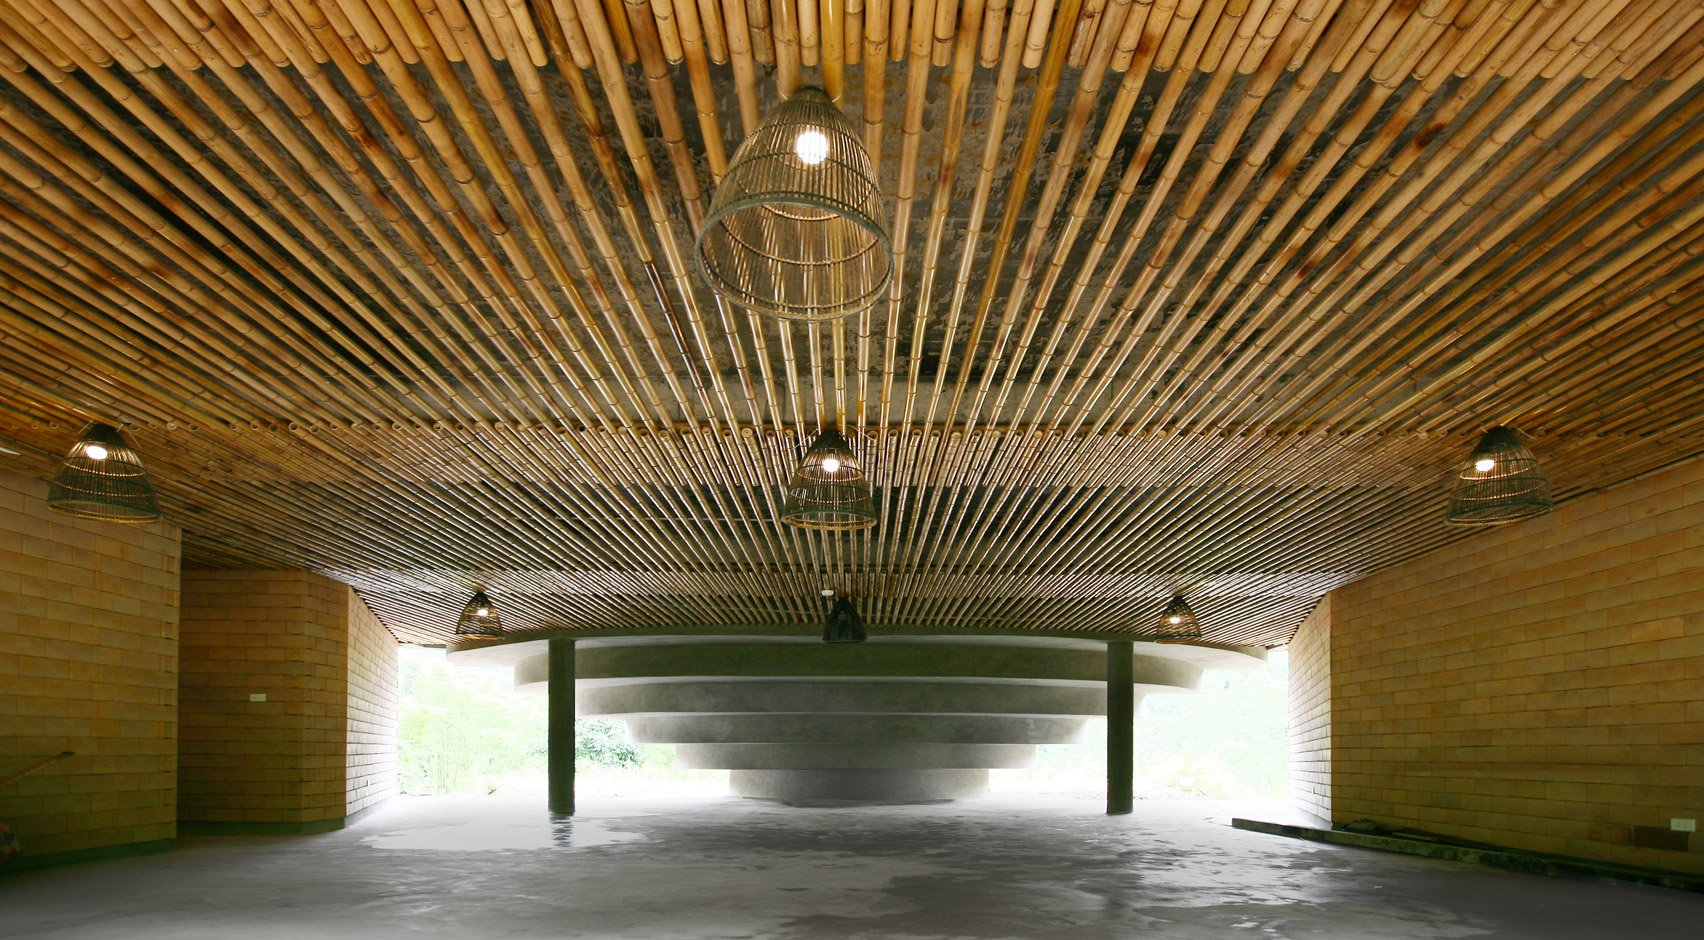 Chieng Yen Community House designed by 1+1>2 Architects in Vietnam